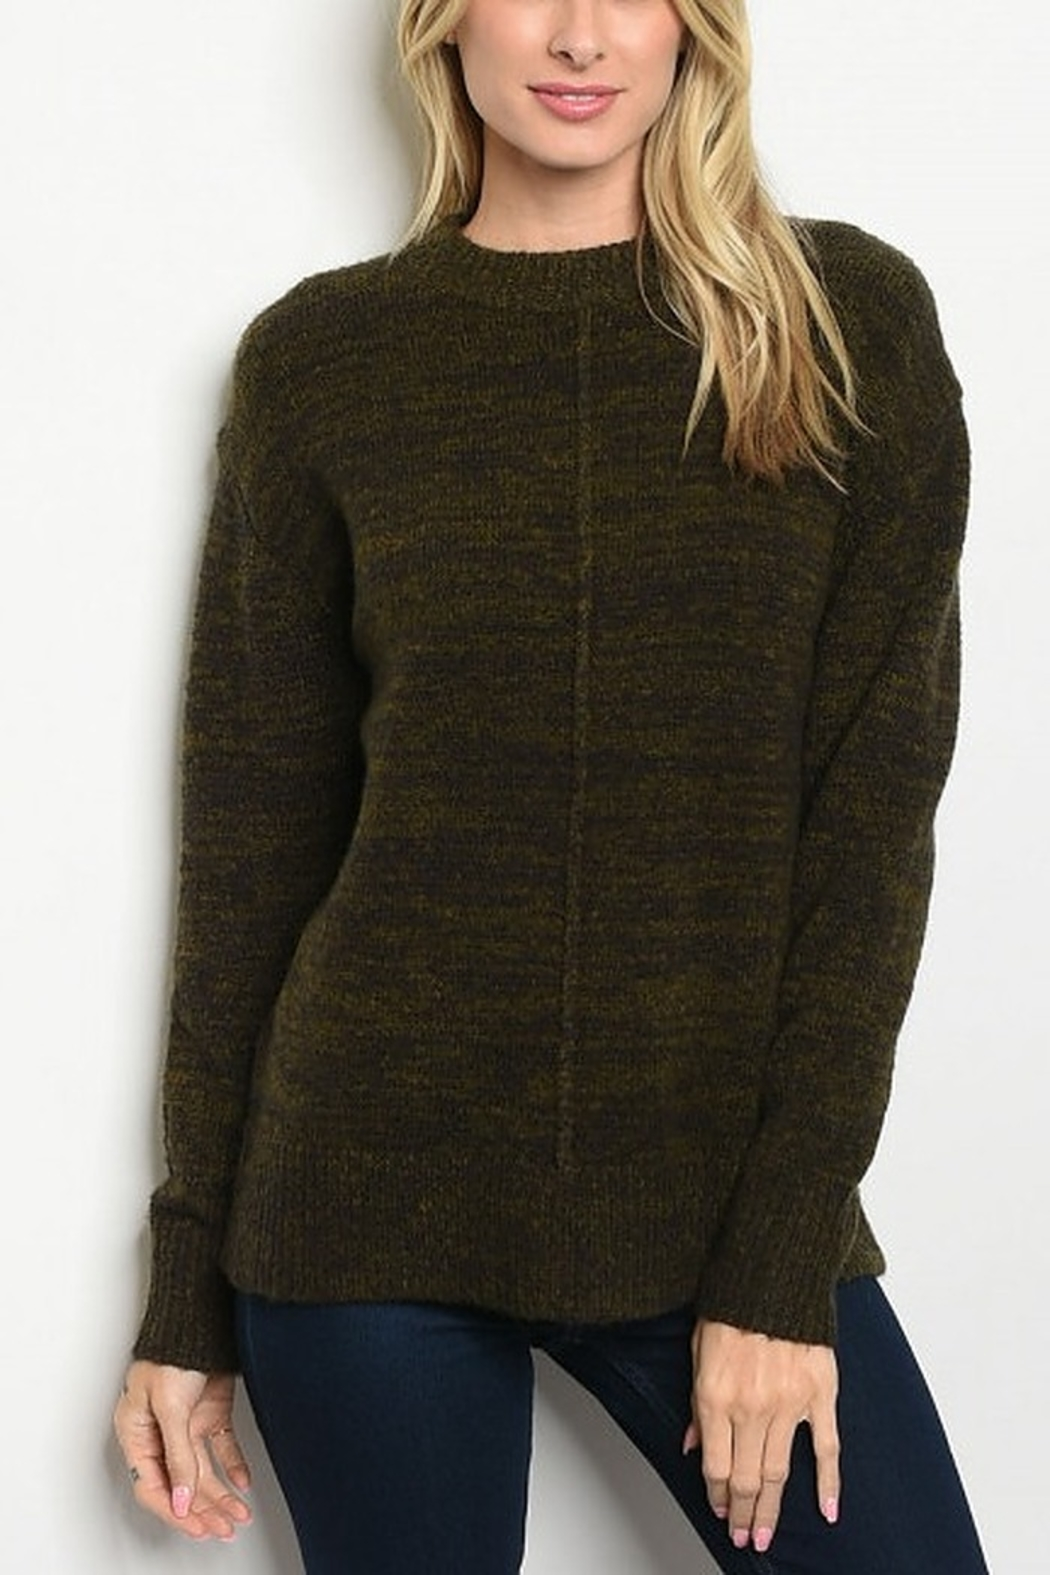 Lyn -Maree's Brown & Olive Cozy Sweater - Main Image